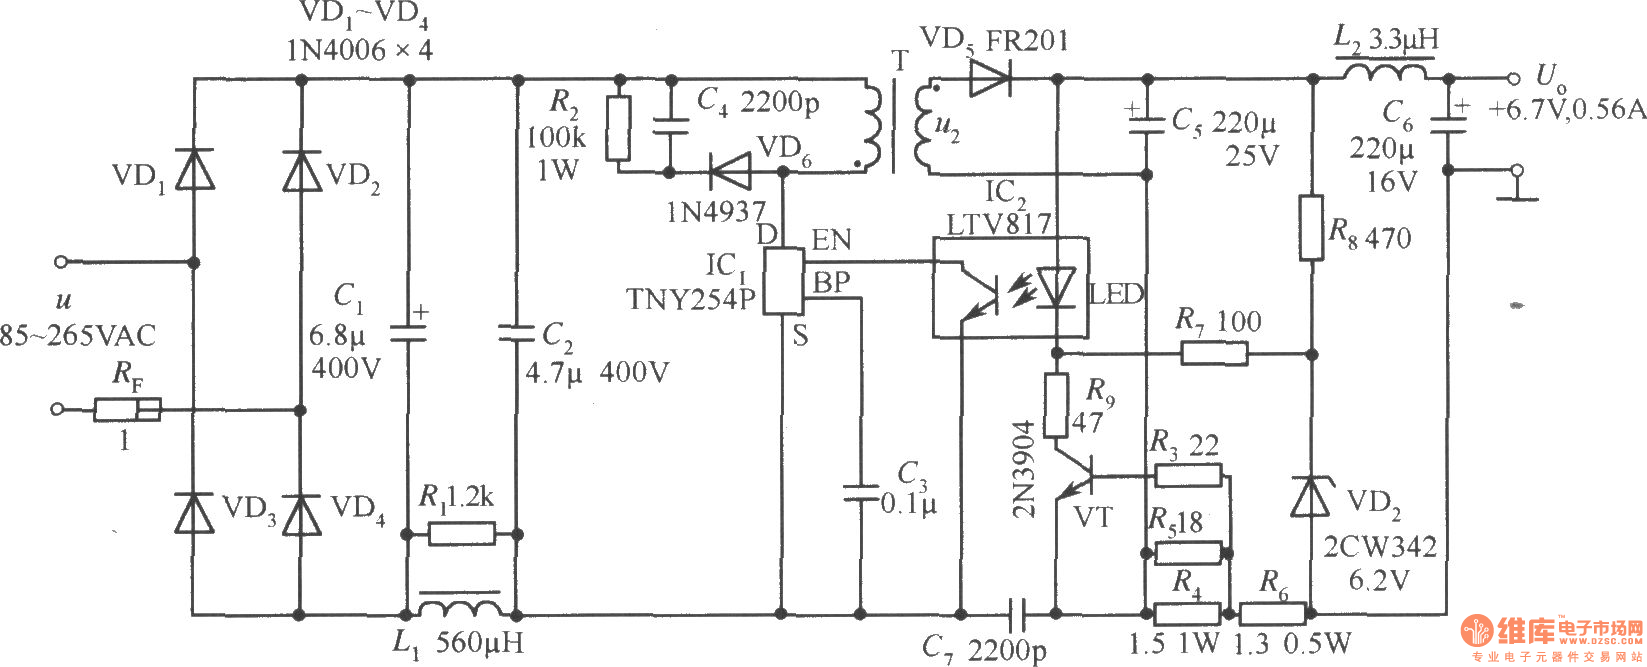 charger five powersupplycircuit circuit diagram seekiccom67v 056a cell phone battery constant current charger circuit